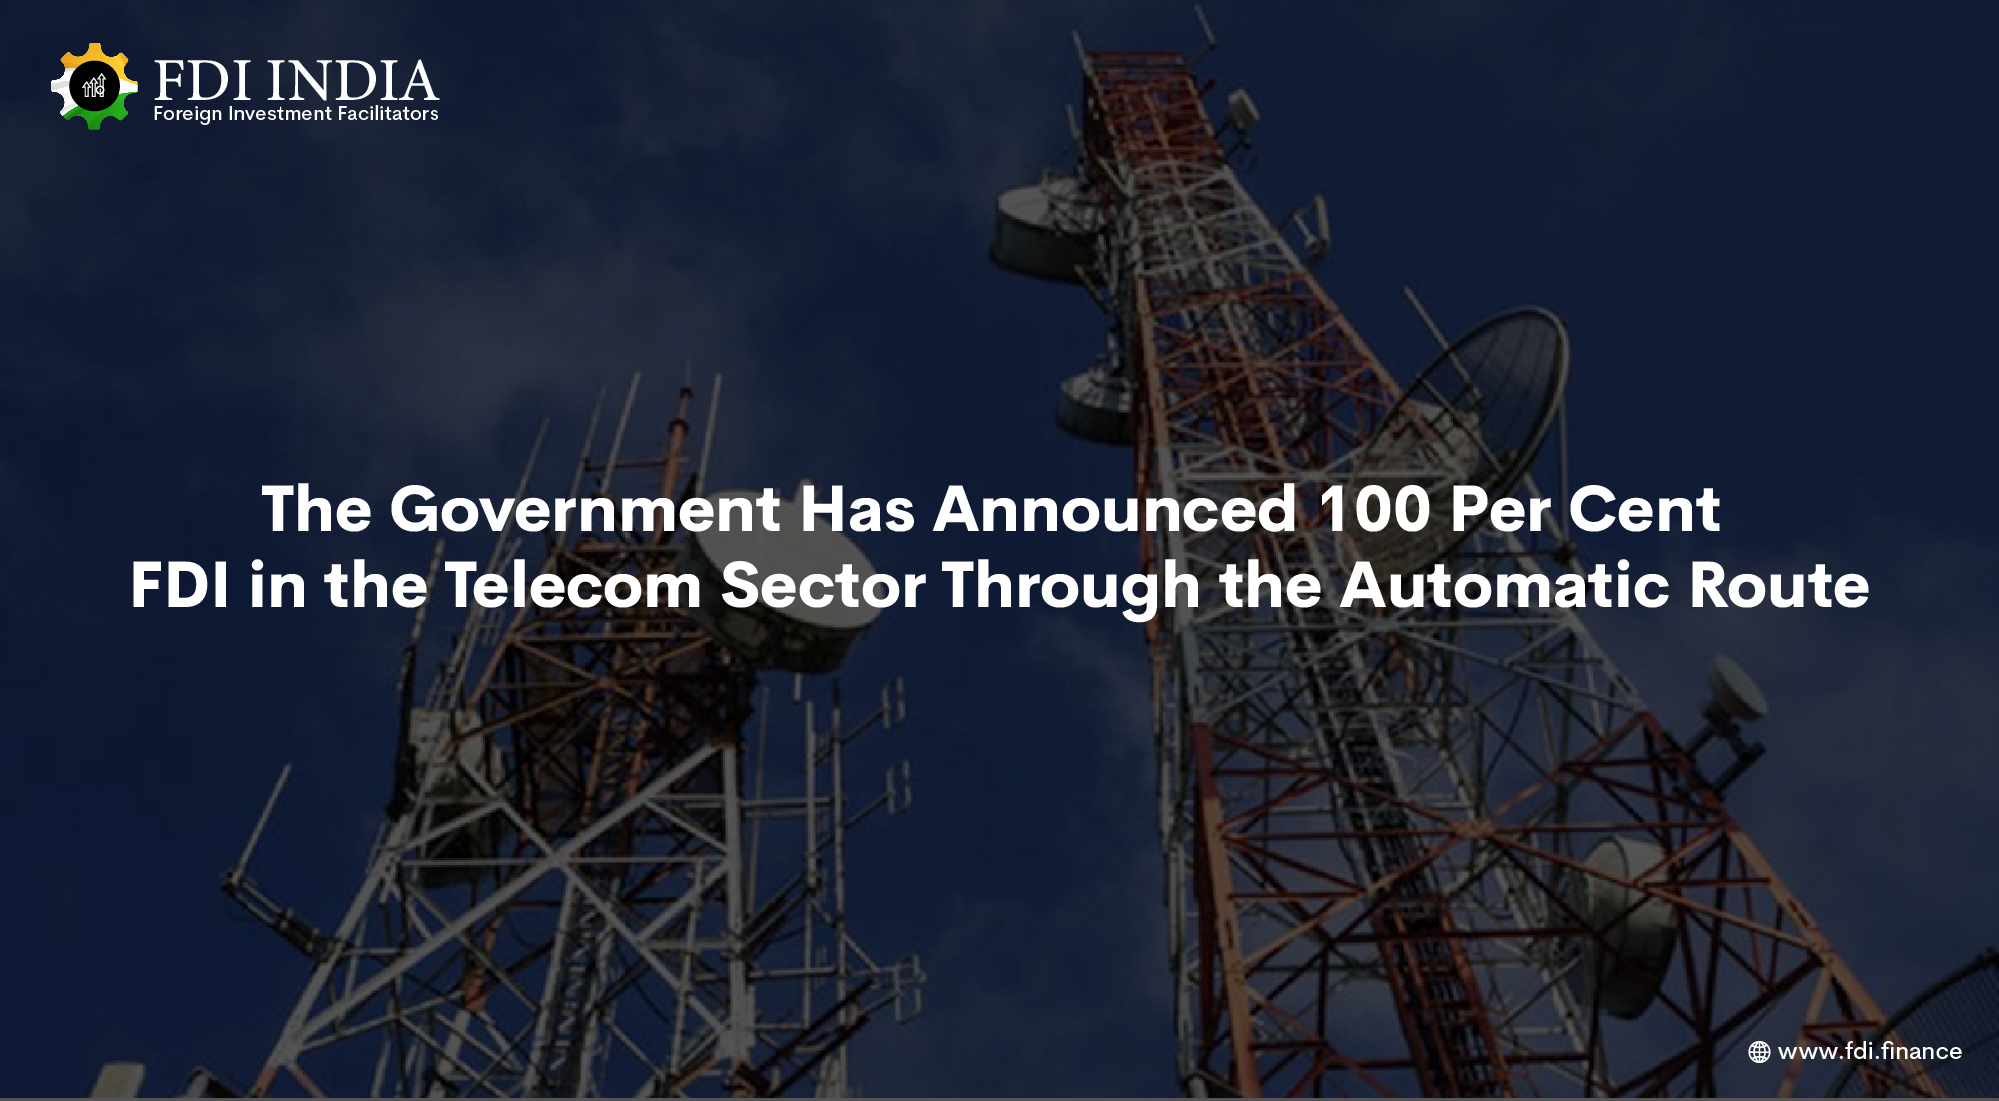 The Government Has Announced 100 Per Cent FDI in the Telecom Sector Through the Automatic Route